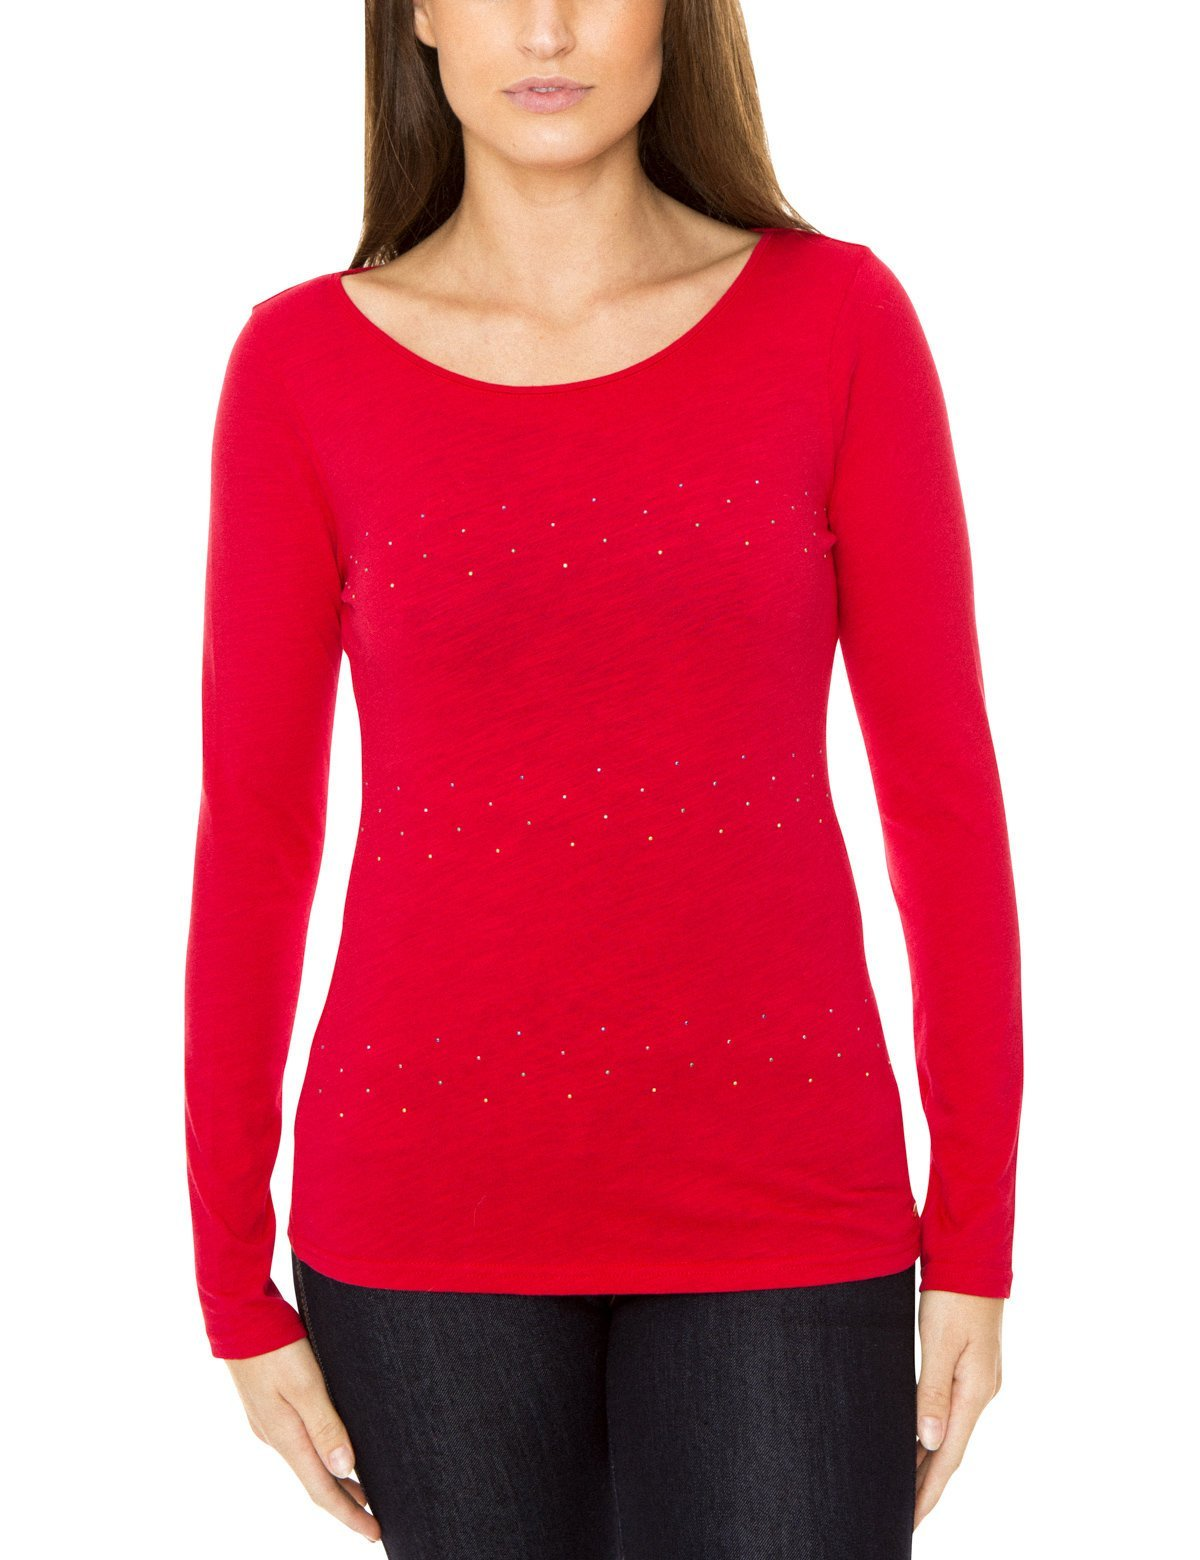 Rhinestone Long Sleeve Tee